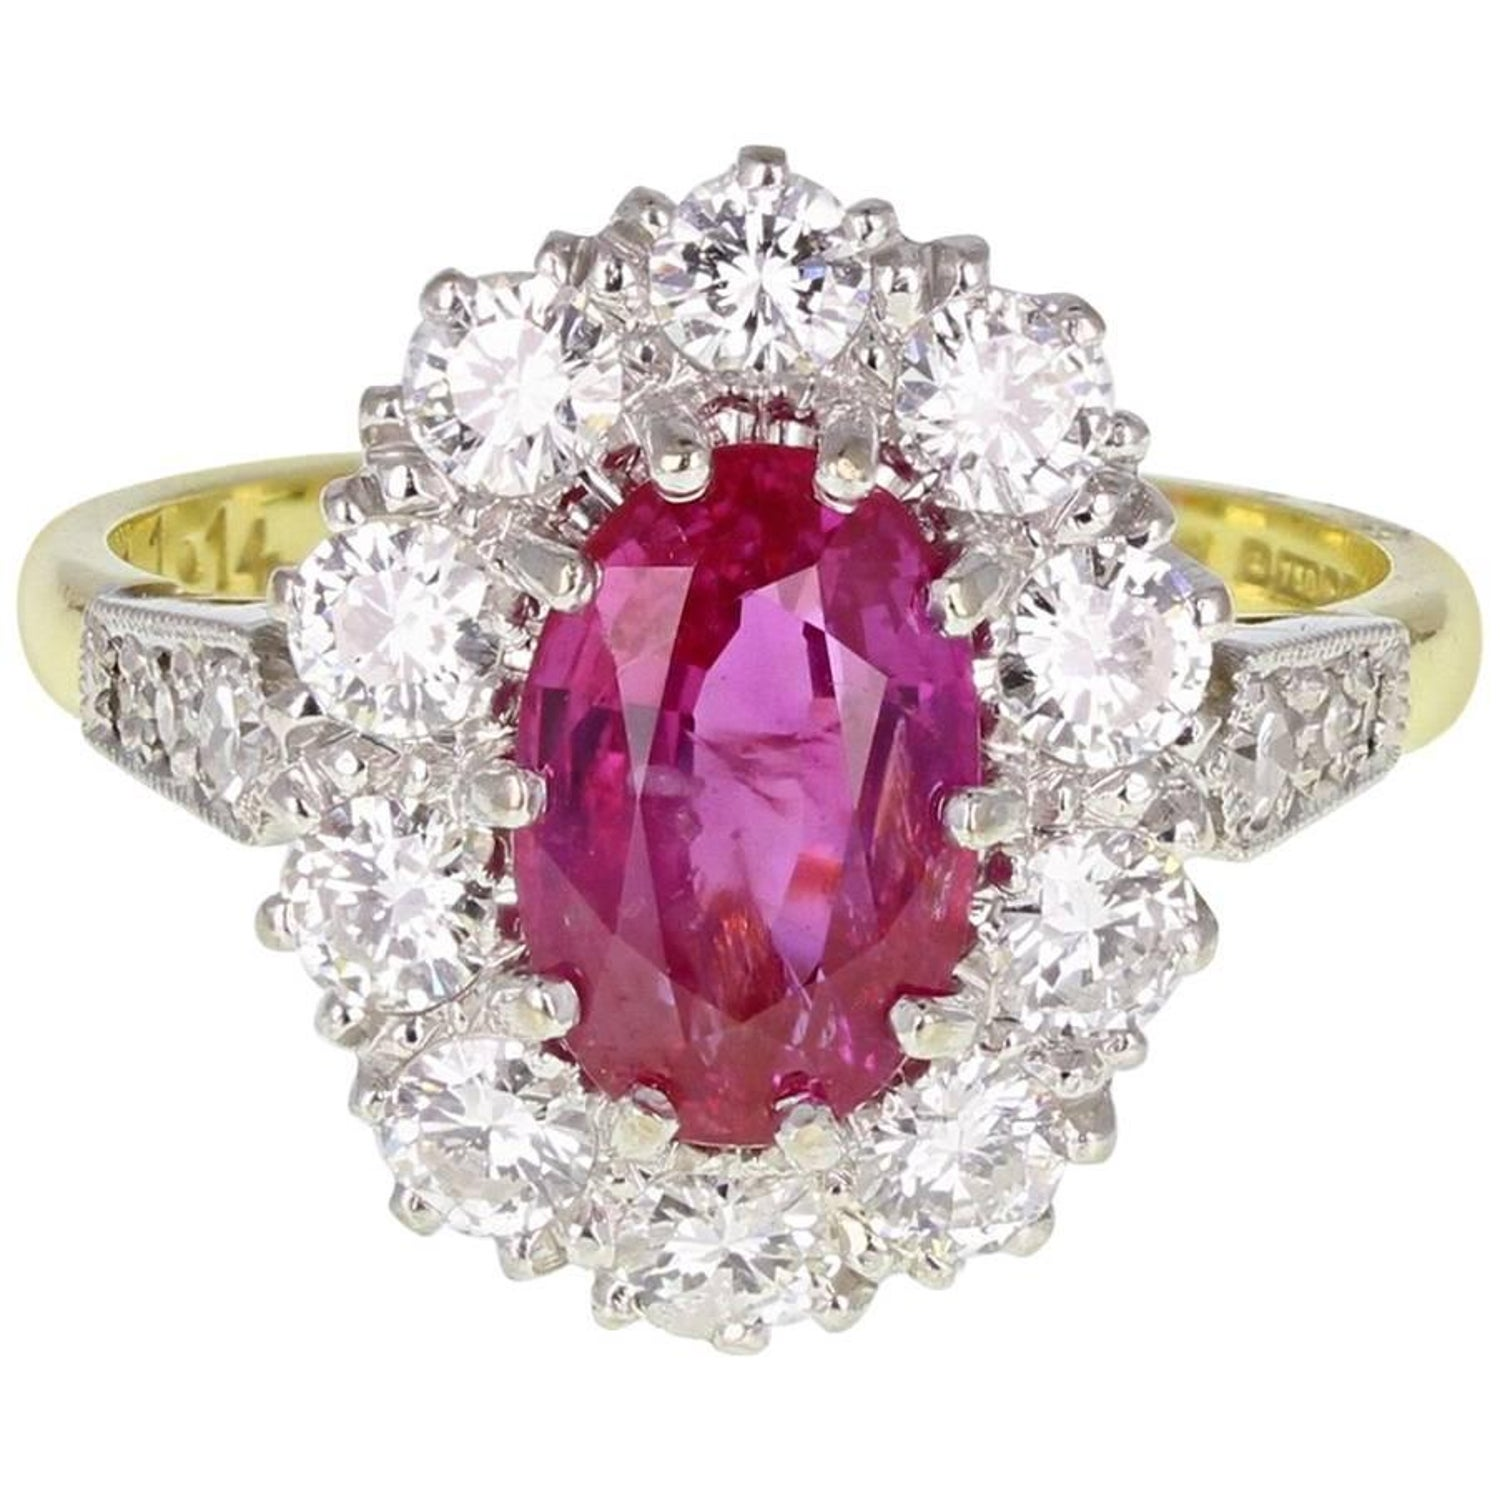 19th Century 5.52 Carat Oval Cut Burma Ruby Diamond Ring For Sale at ...